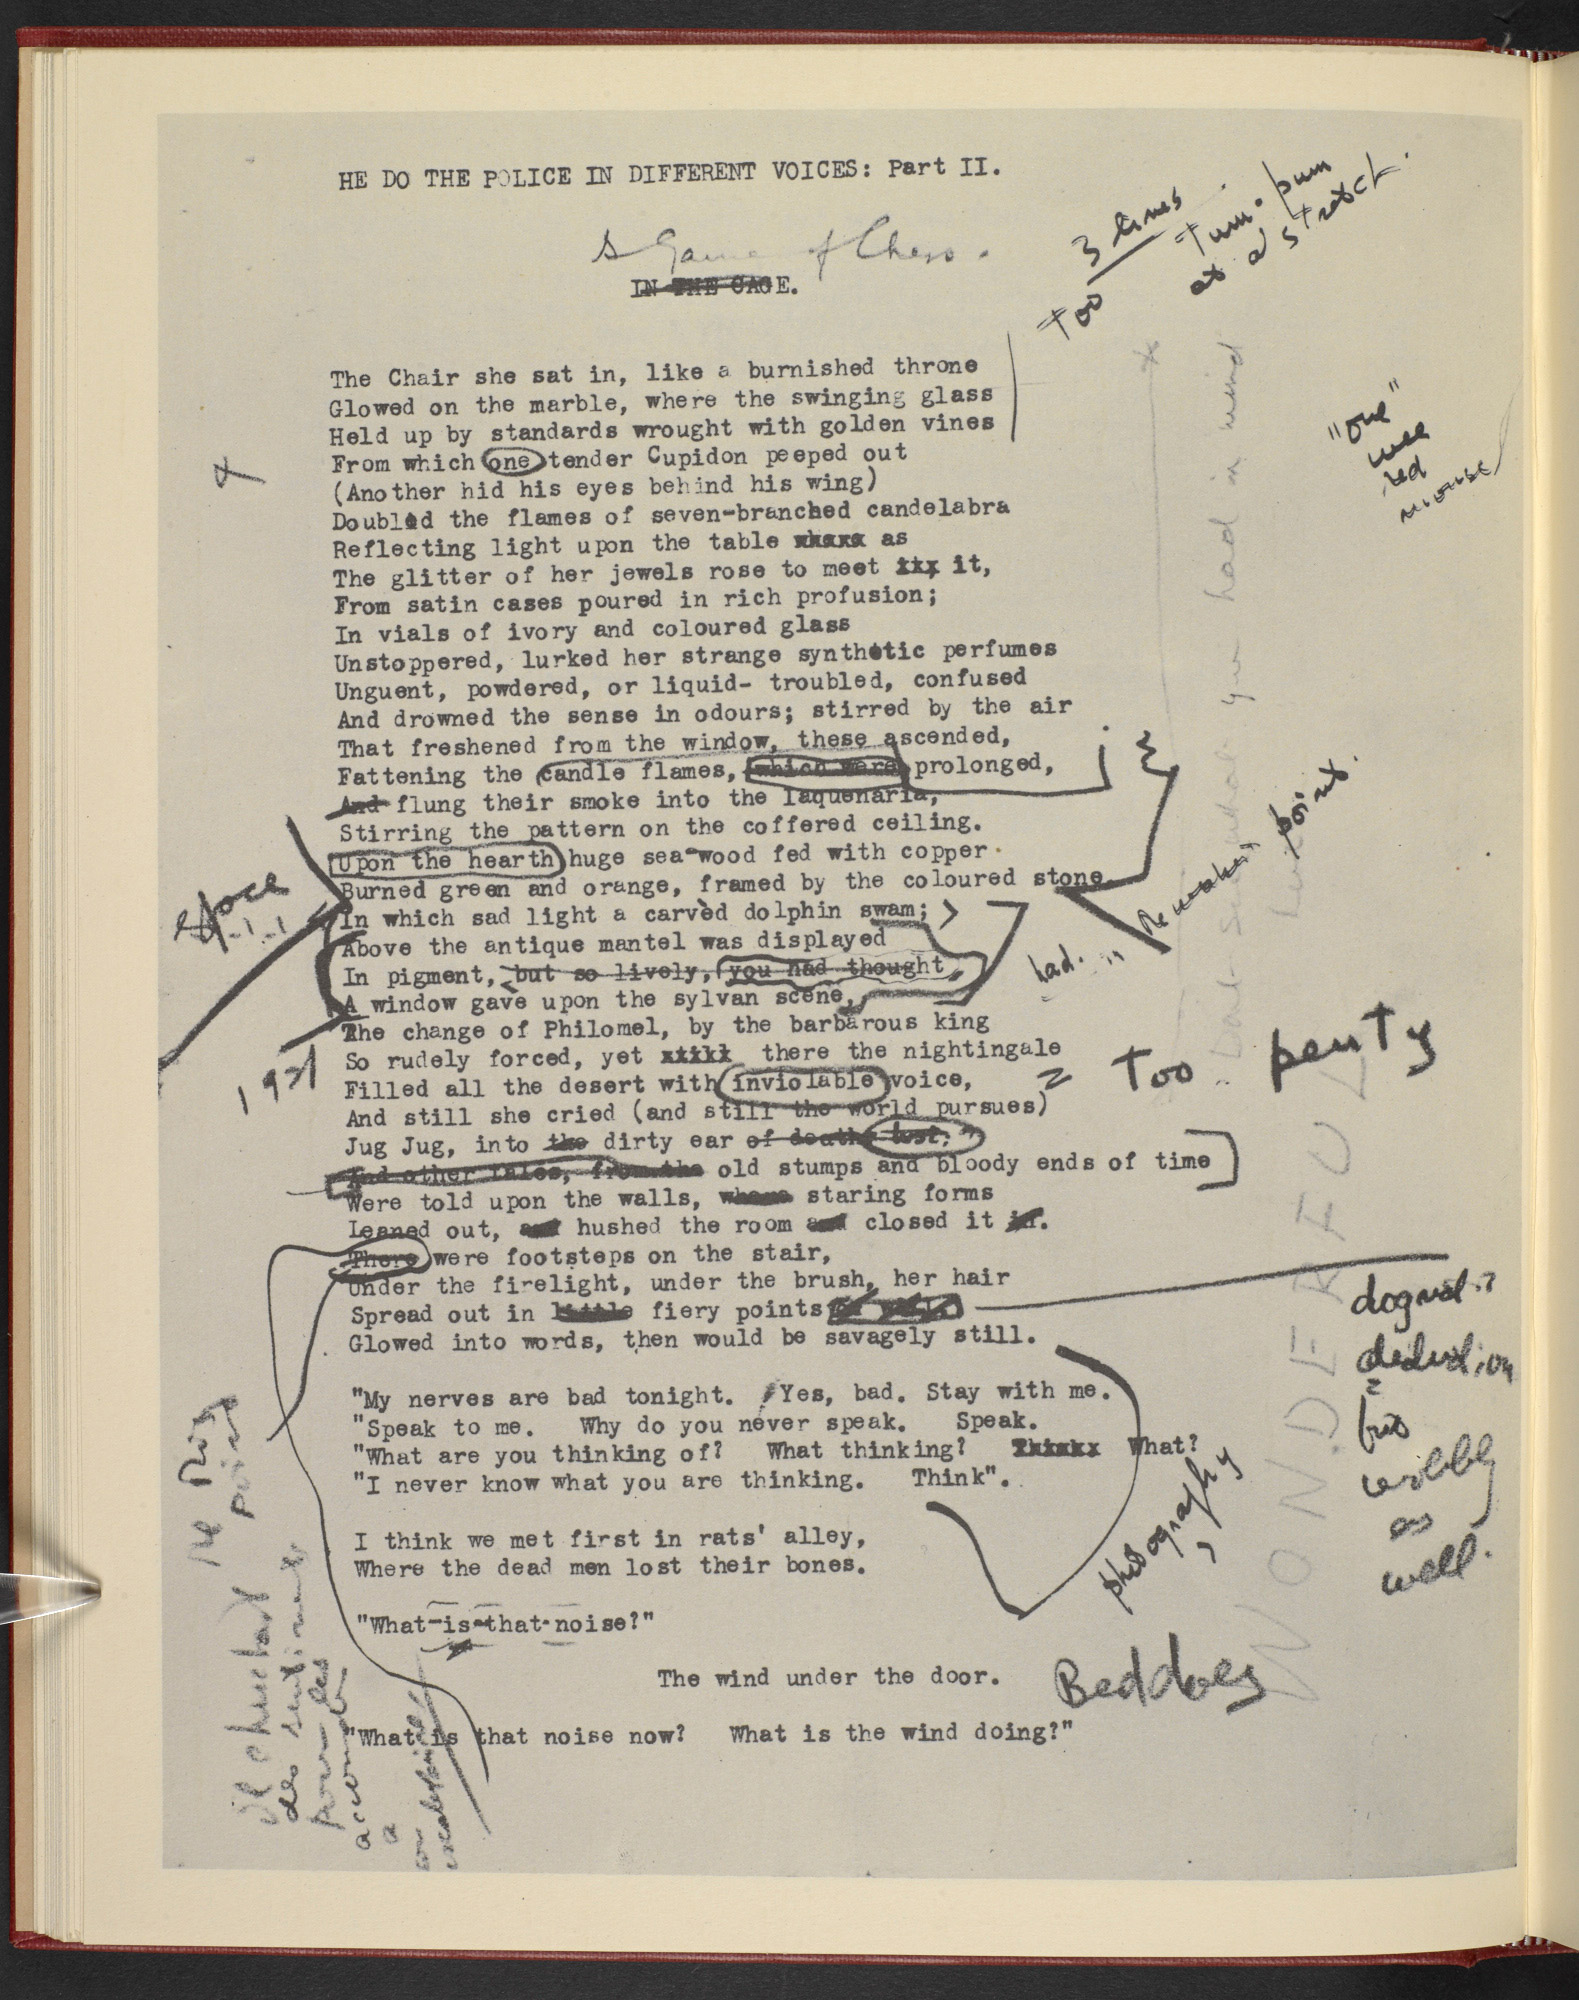 Ezra Pound and the drafts of The Waste Land - The British Library